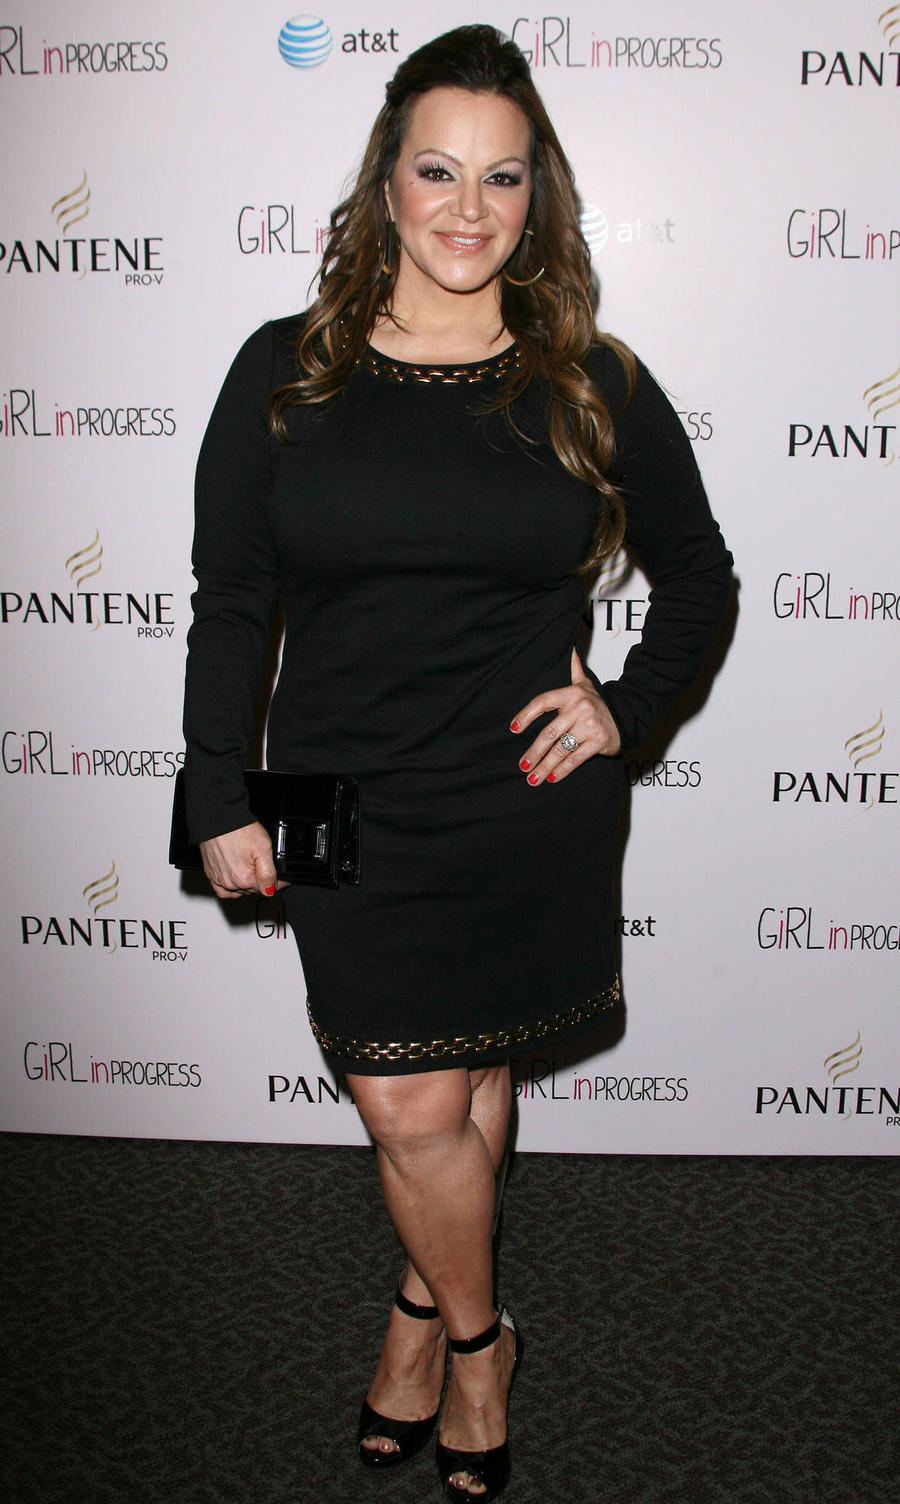 Jenni Rivera Tv Series Allowed To Air